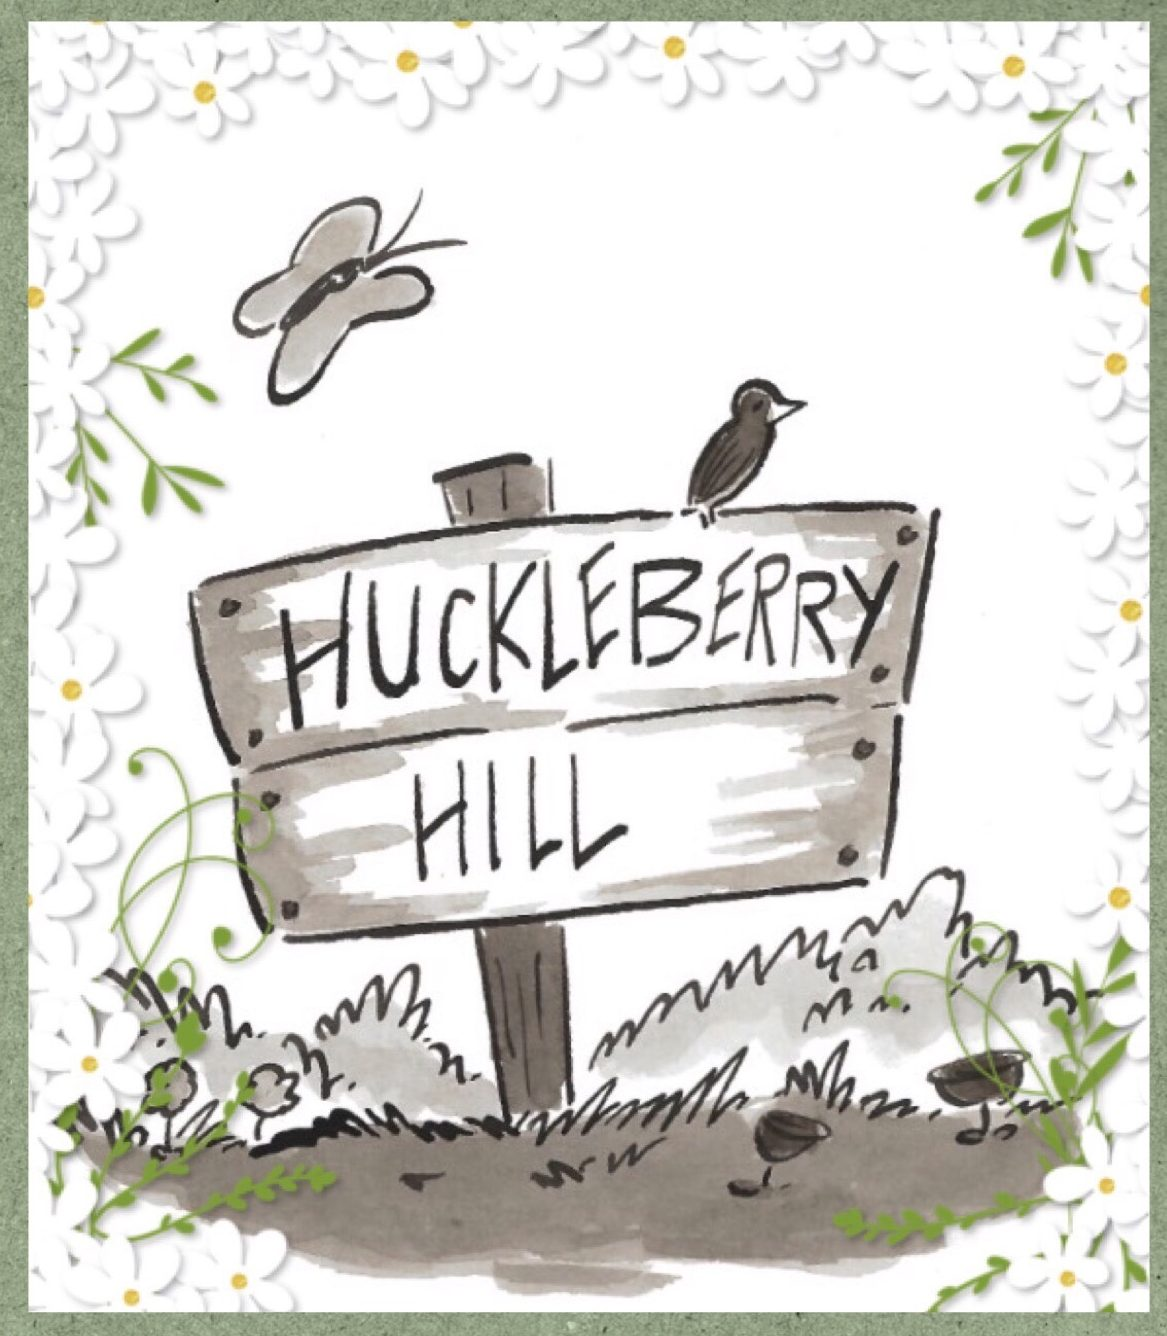 Huckleberry Hill Adventure